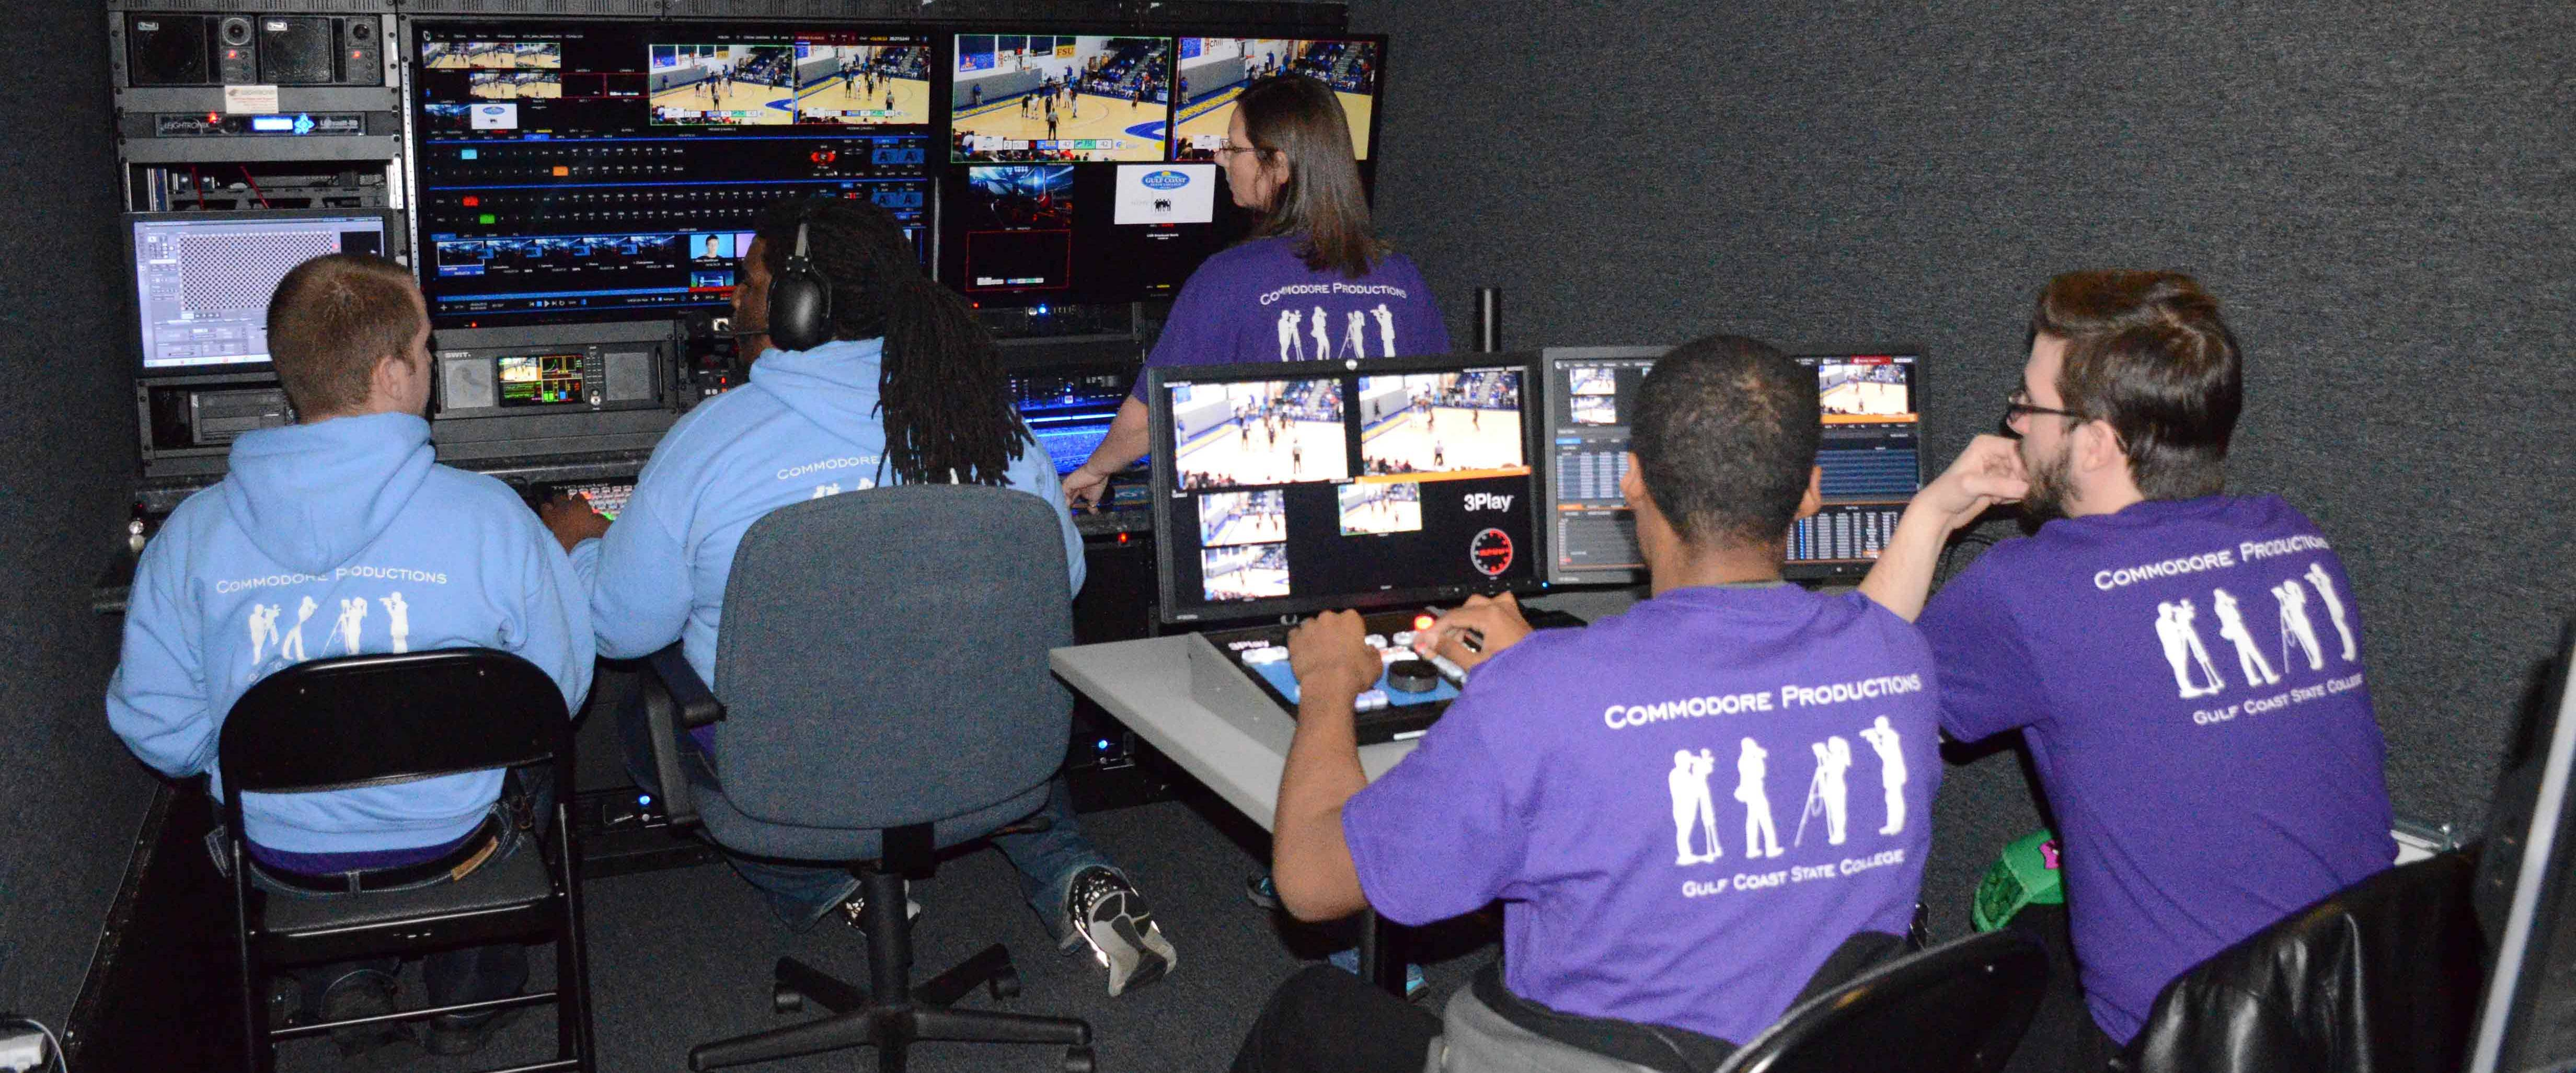 Students in the Production Room